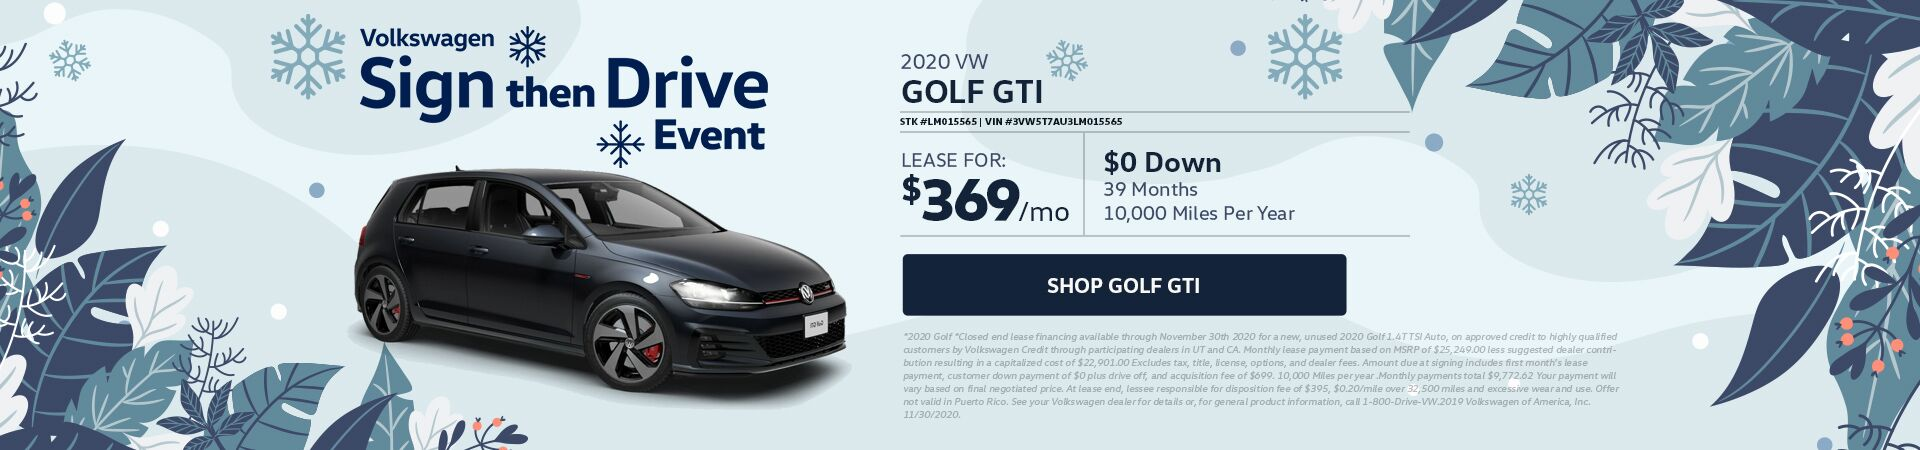 Golf GTI -updated 11.12.20